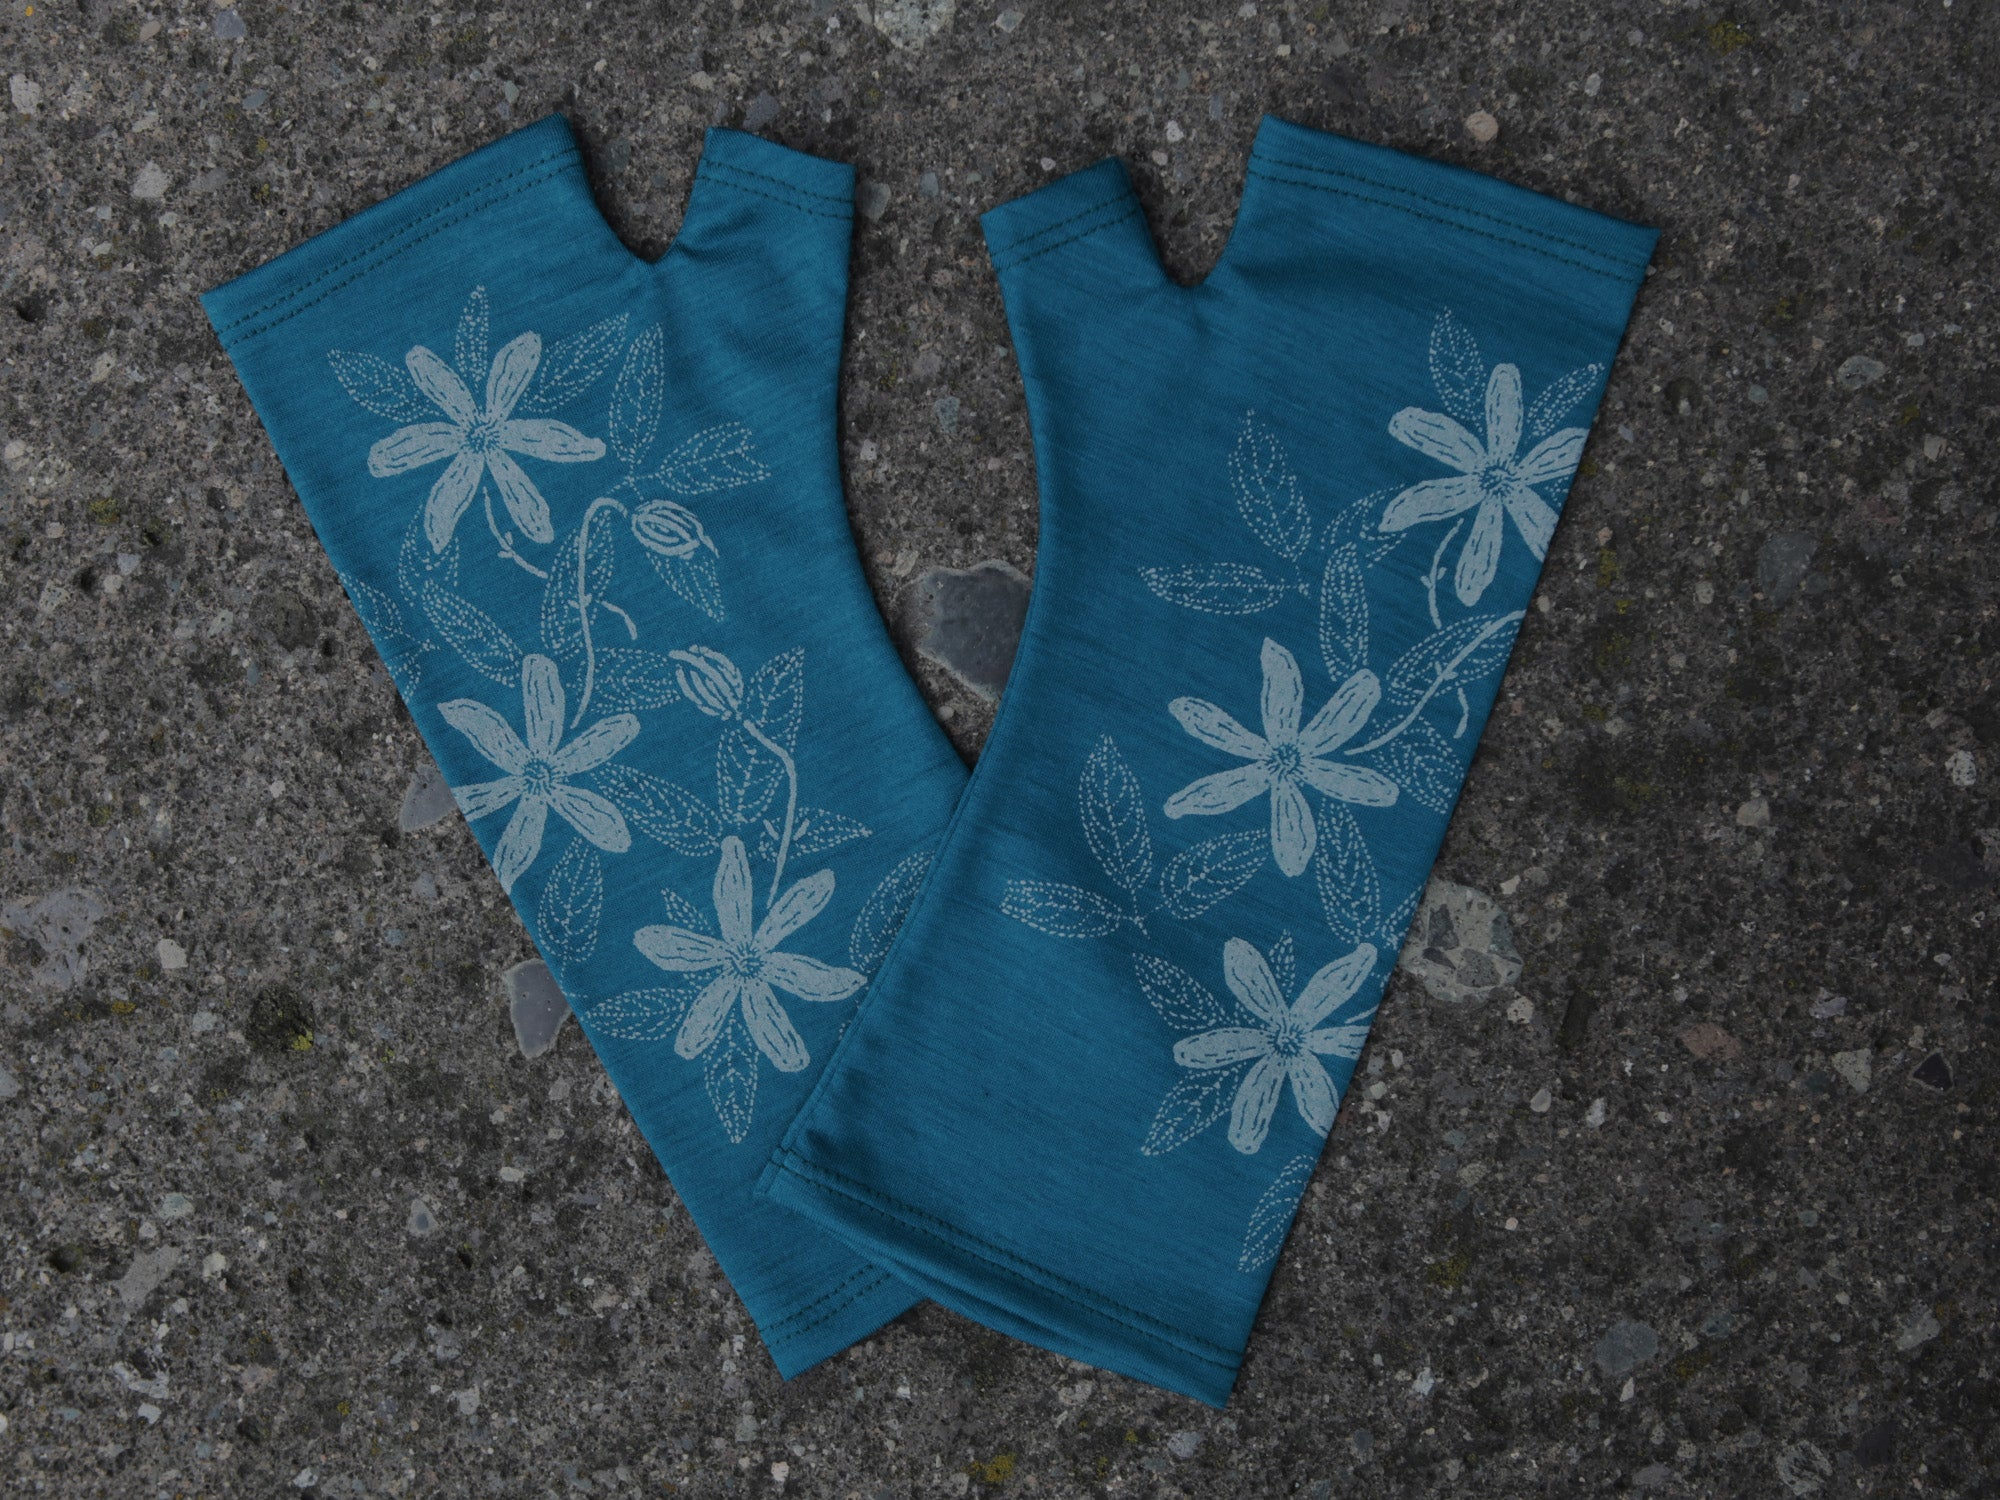 Teal Clematis merino gloves